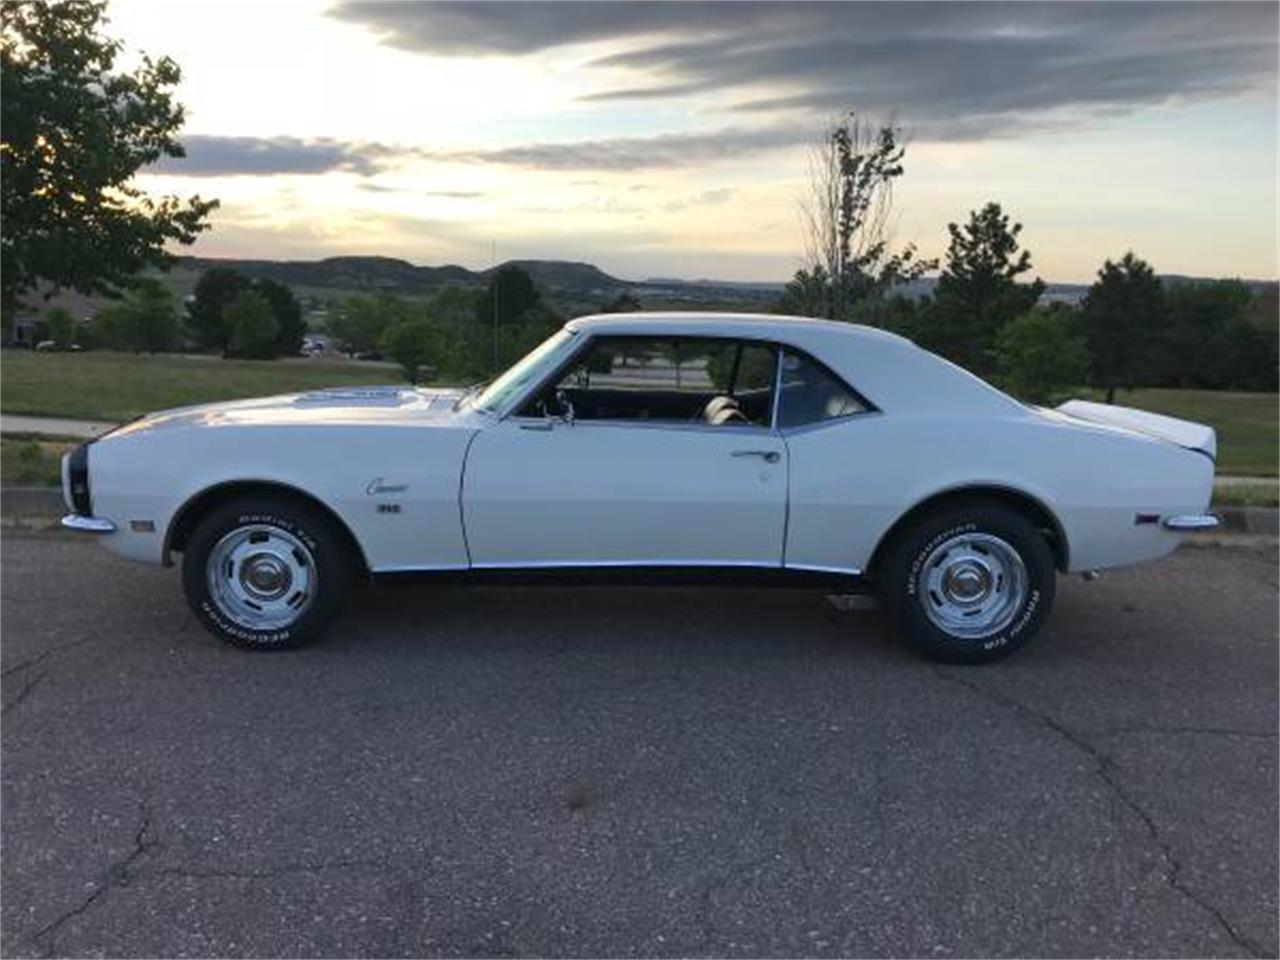 Large Picture of Classic '68 Camaro located in Colorado - $39,000.00 Offered by a Private Seller - QDF6